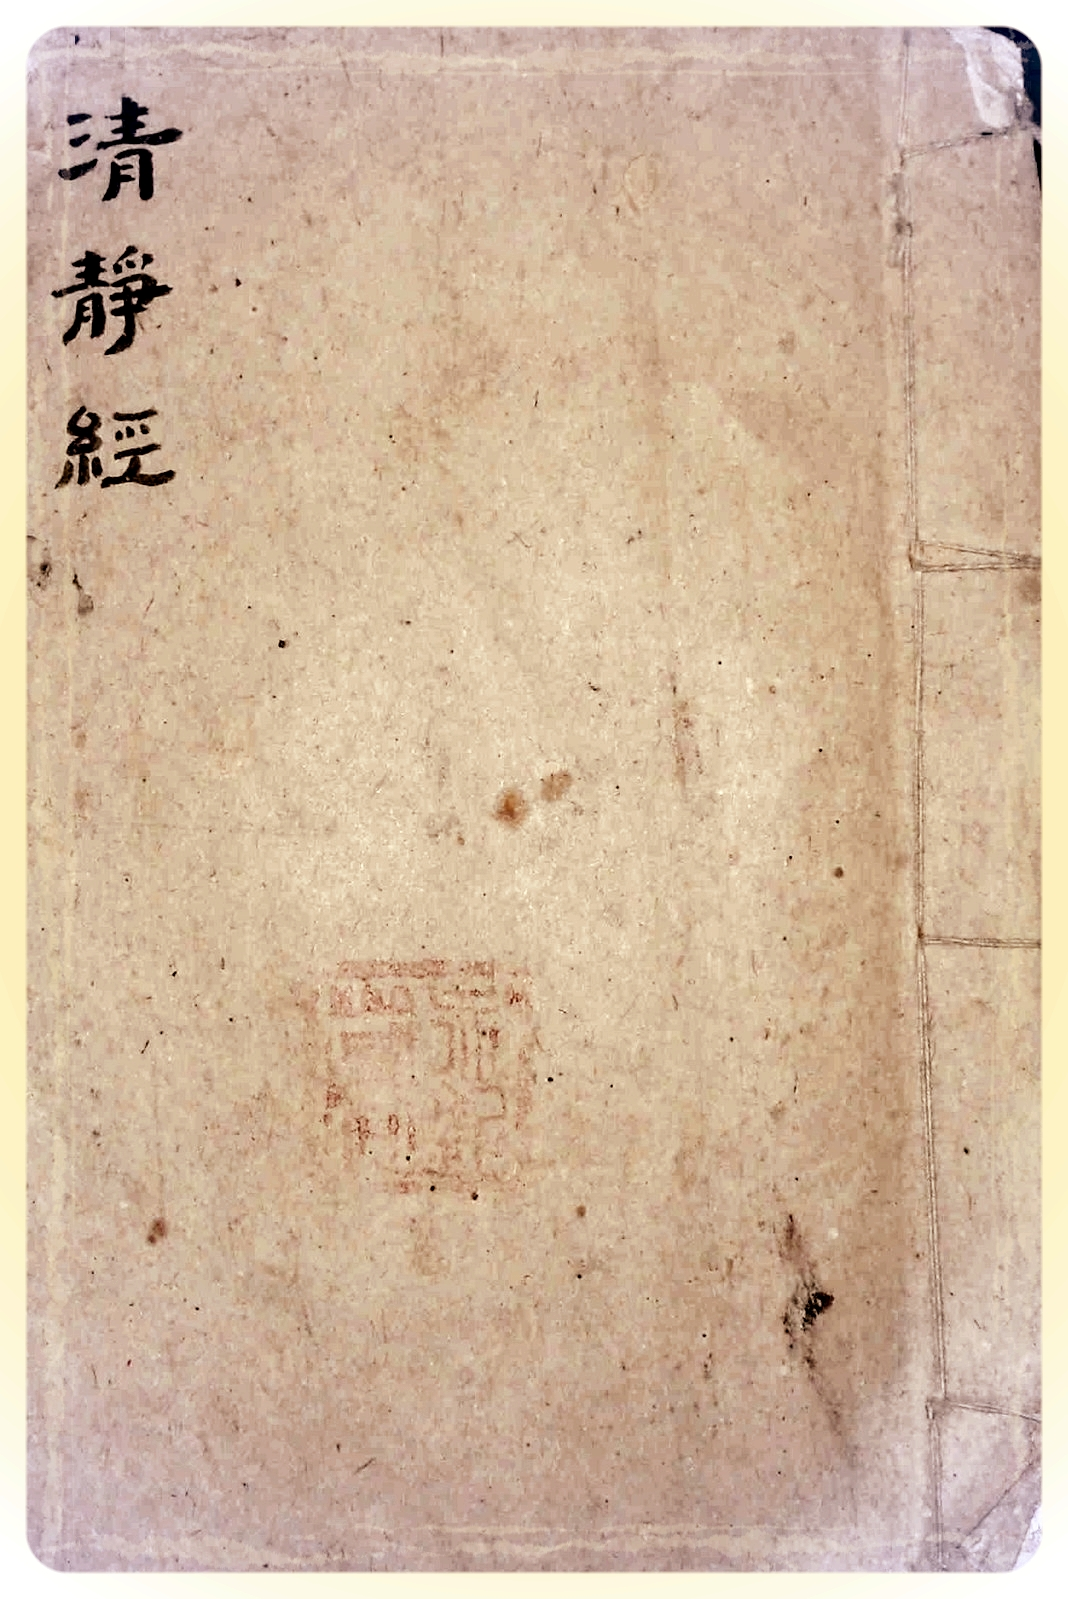 Aboot Xu Ben Shan's personal copy of the  Qing Jing JIng